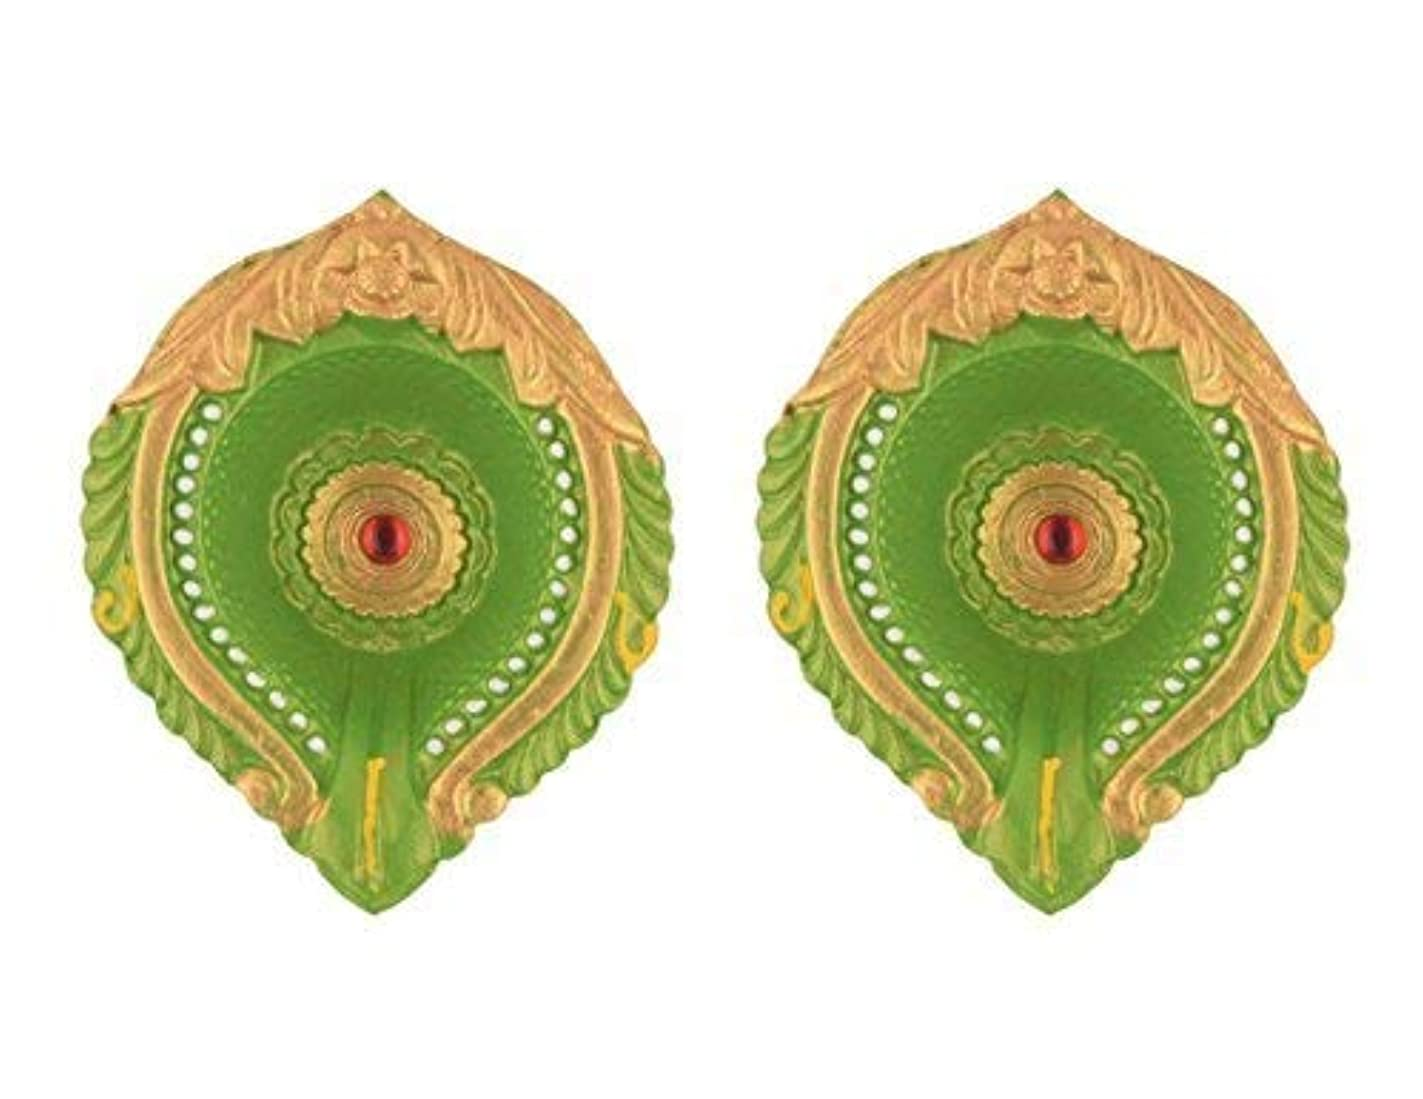 storeindya Set of 2 Oil Lamps Diyas Handmade Decorative Clay Candle Tea Light Holder Green Terracotta Clay Floor Décor